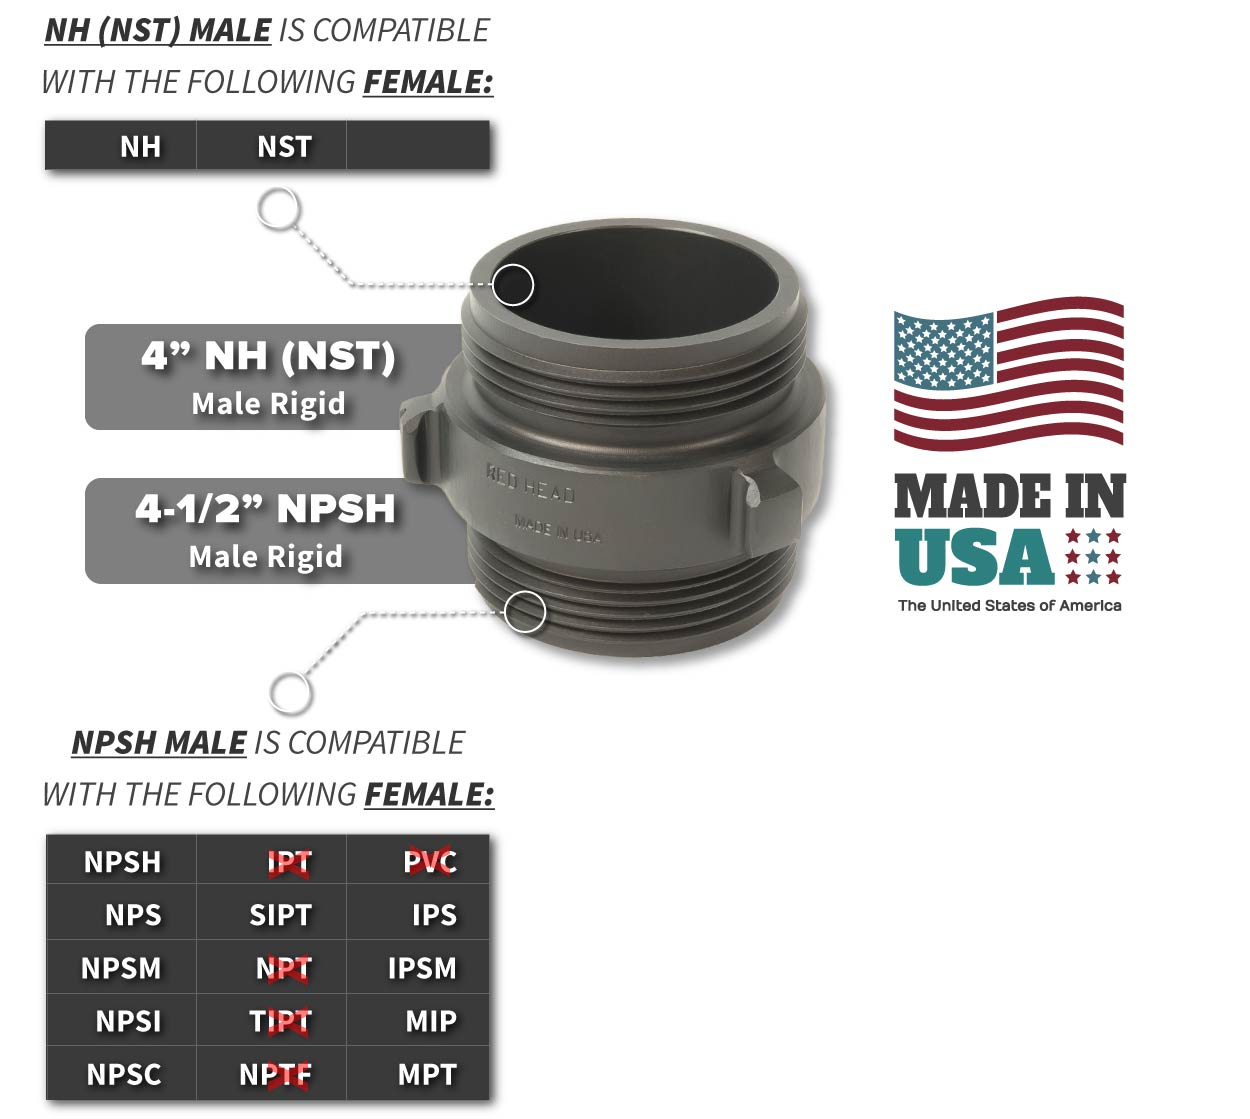 4 Inch NH-NST Male x 4.5 Inch NPSH Male Compatibility Thread Chart